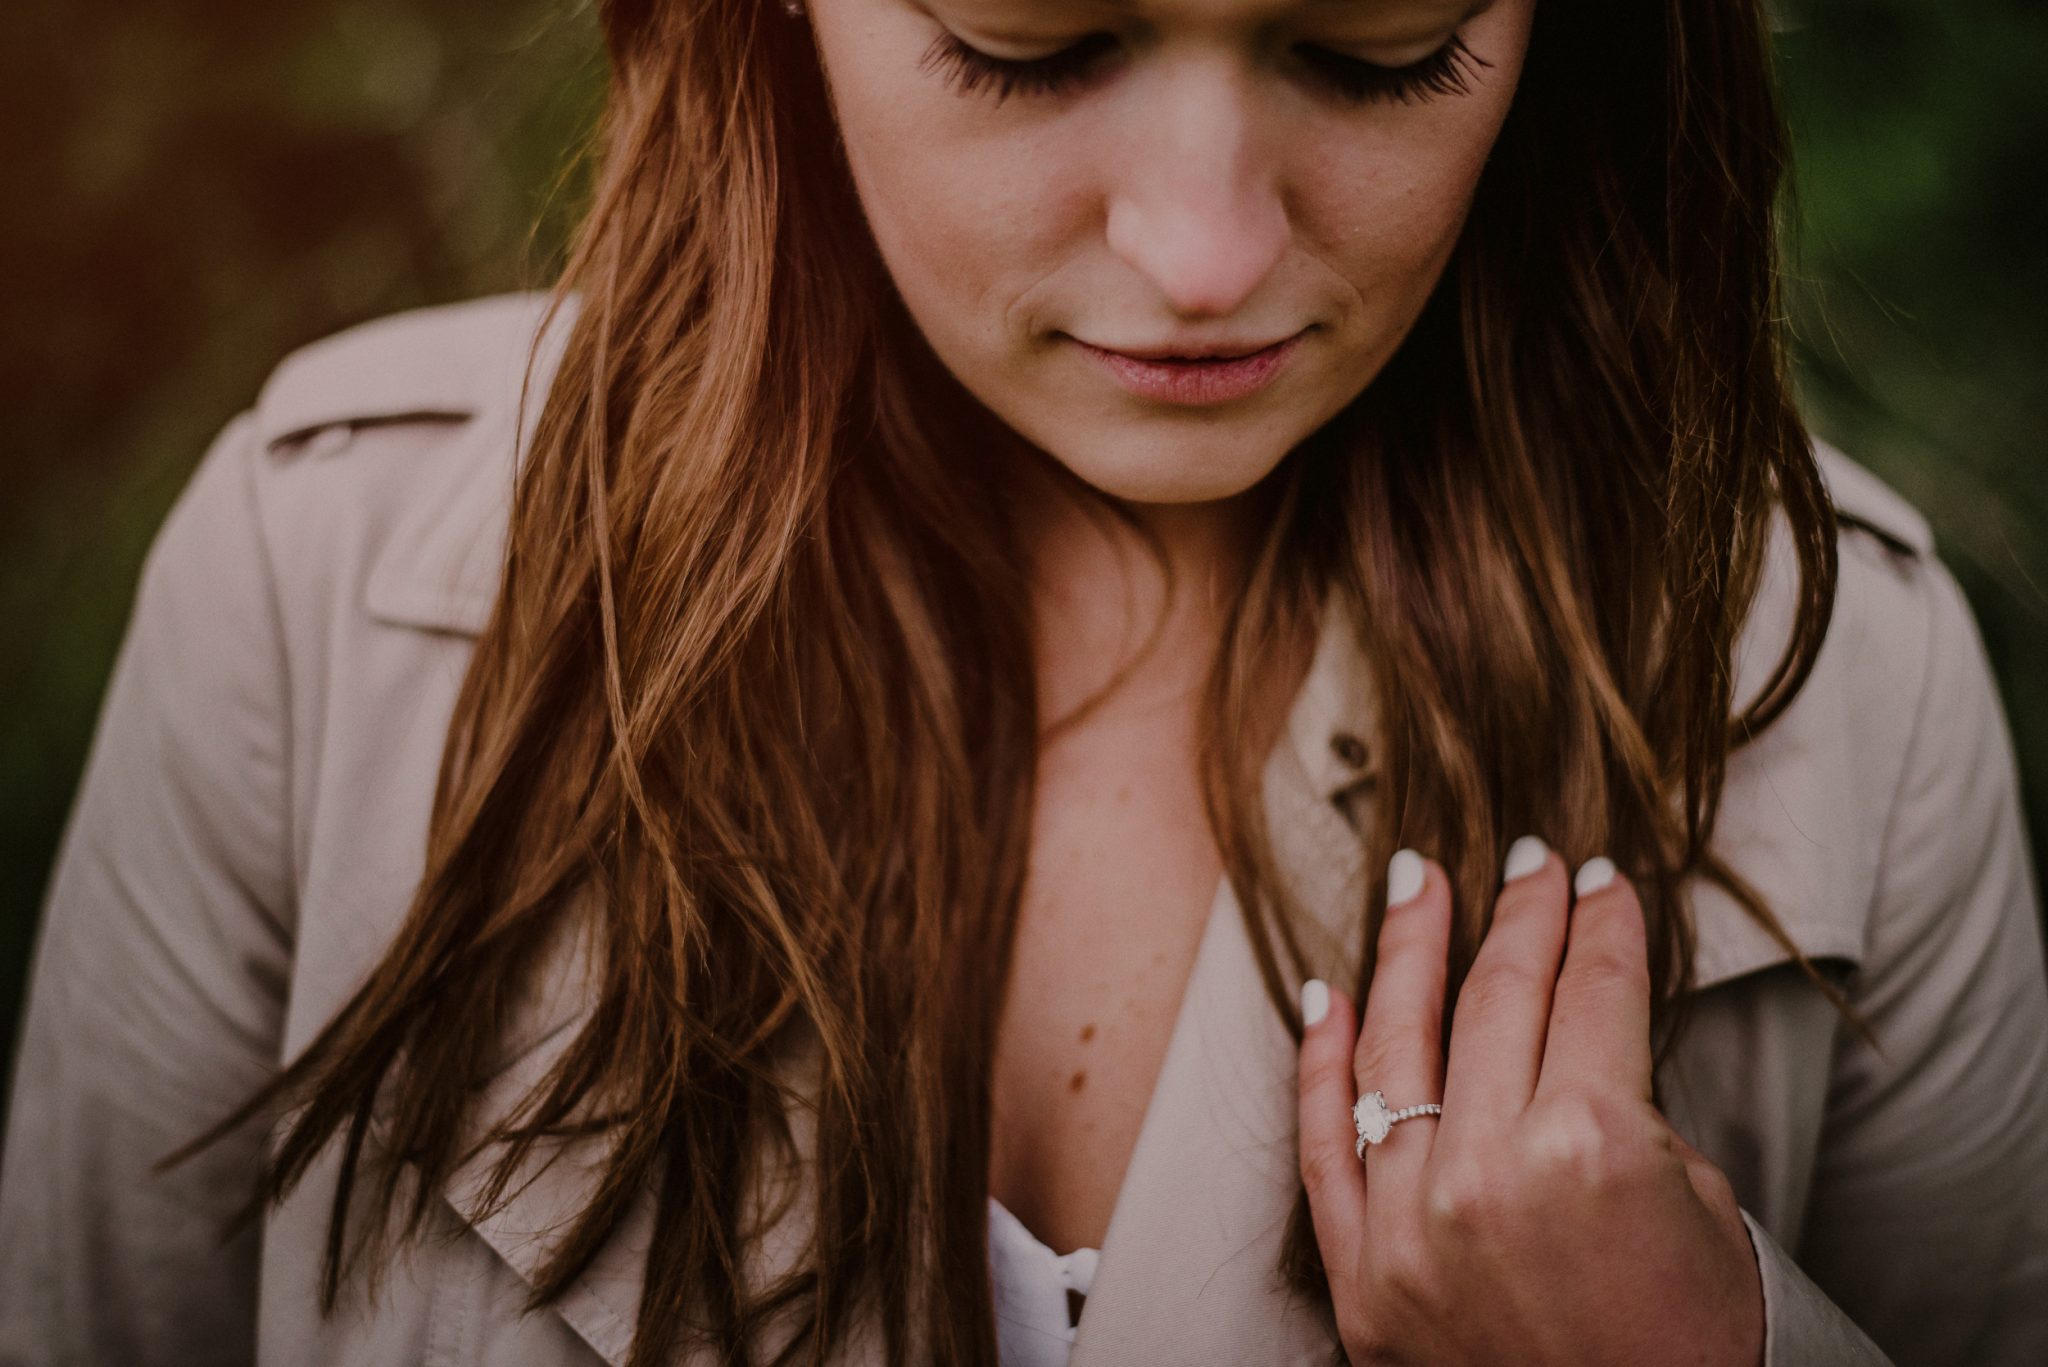 artistic portrait of newly engaged girl